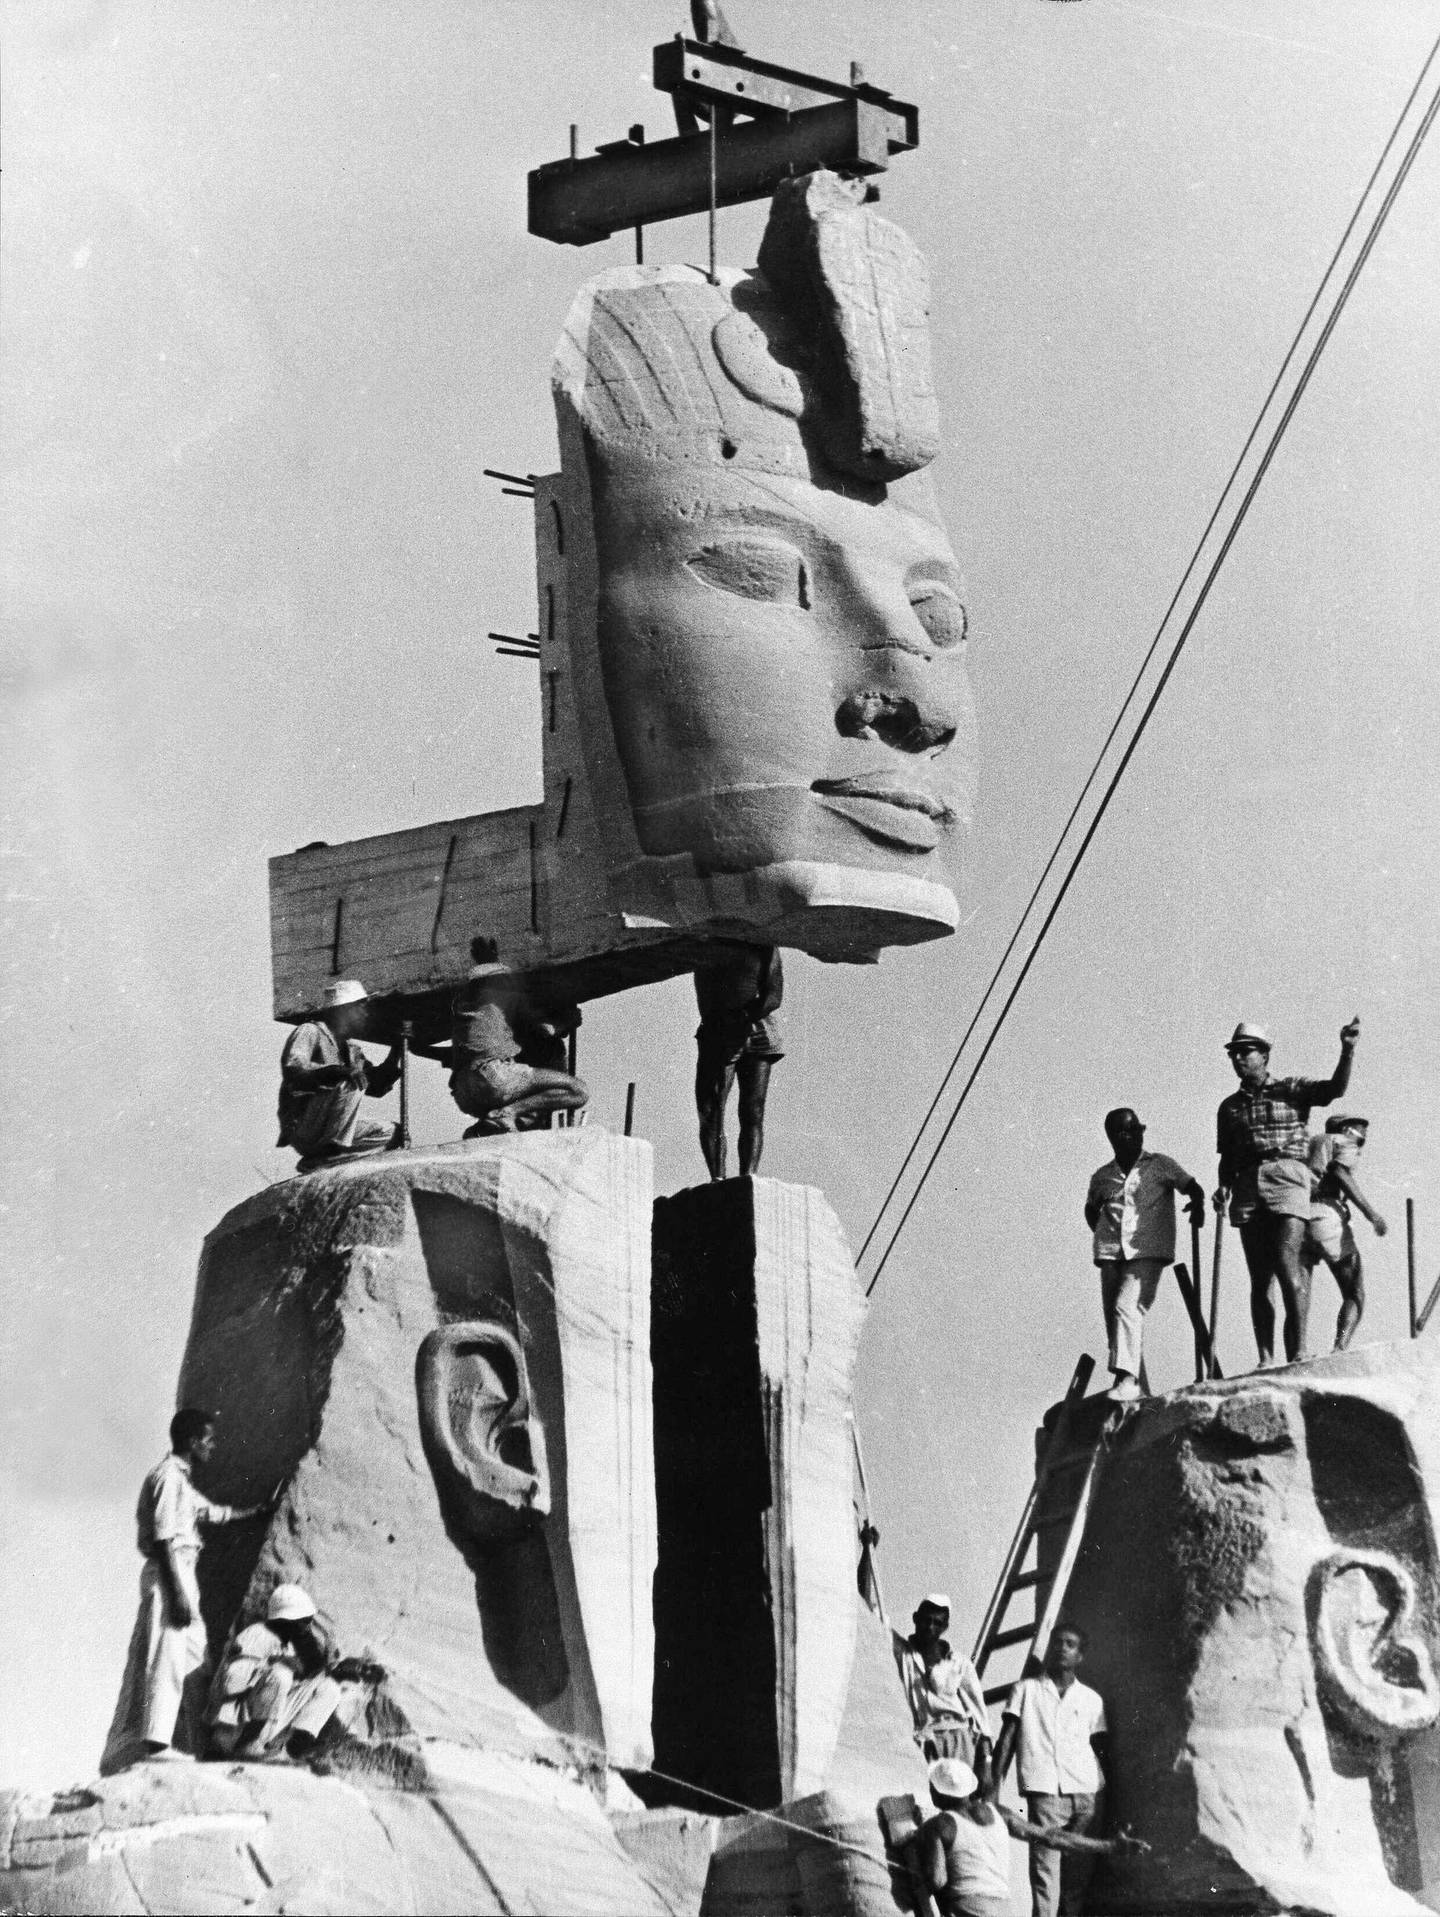 FILE - In this photo taken on Oct. 11, 1966 in Egypt, workmen lower one of the heads of the four rock-hewn colossi of King Ramses II into place, on the foundation of the re-sited monument. The global campaign that saved the ancient Egyptian temples of Abu Simbel from inundation by the Aswan Dam 50 years ago was remembered this week as an unprecedented engineering achievement and a turning point in the perception of cultural treasures as a responsibility of all humanity. (AP Photo)